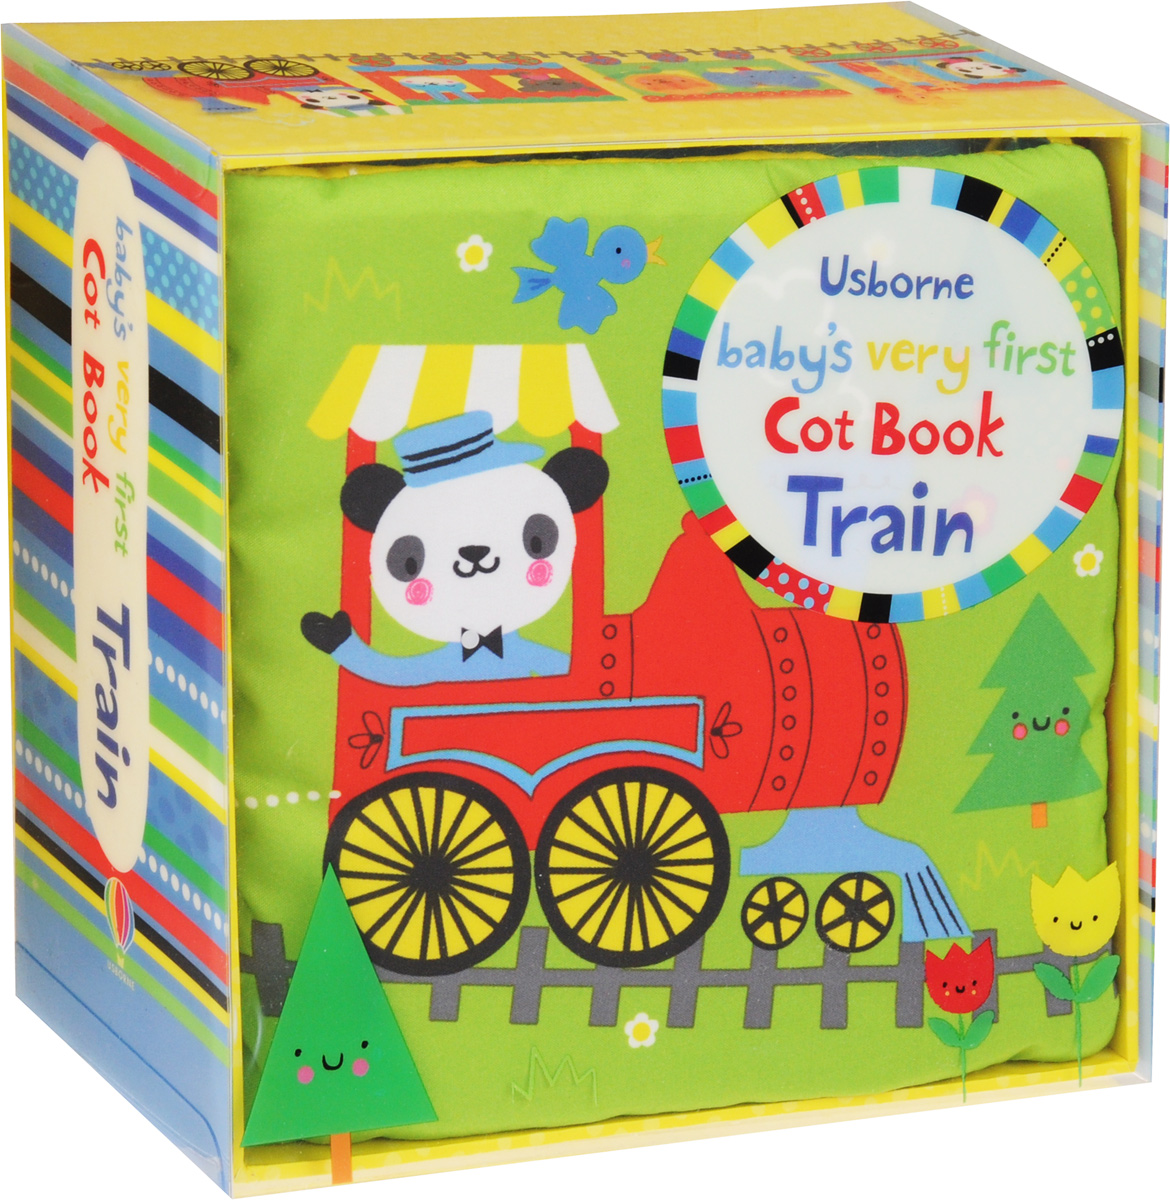 Baby's Very First Cot Book: Train x 1105 automatic aerosol perfume dispenser wall mounted hotel home office air freshener abs plastic car air purifier fragrant